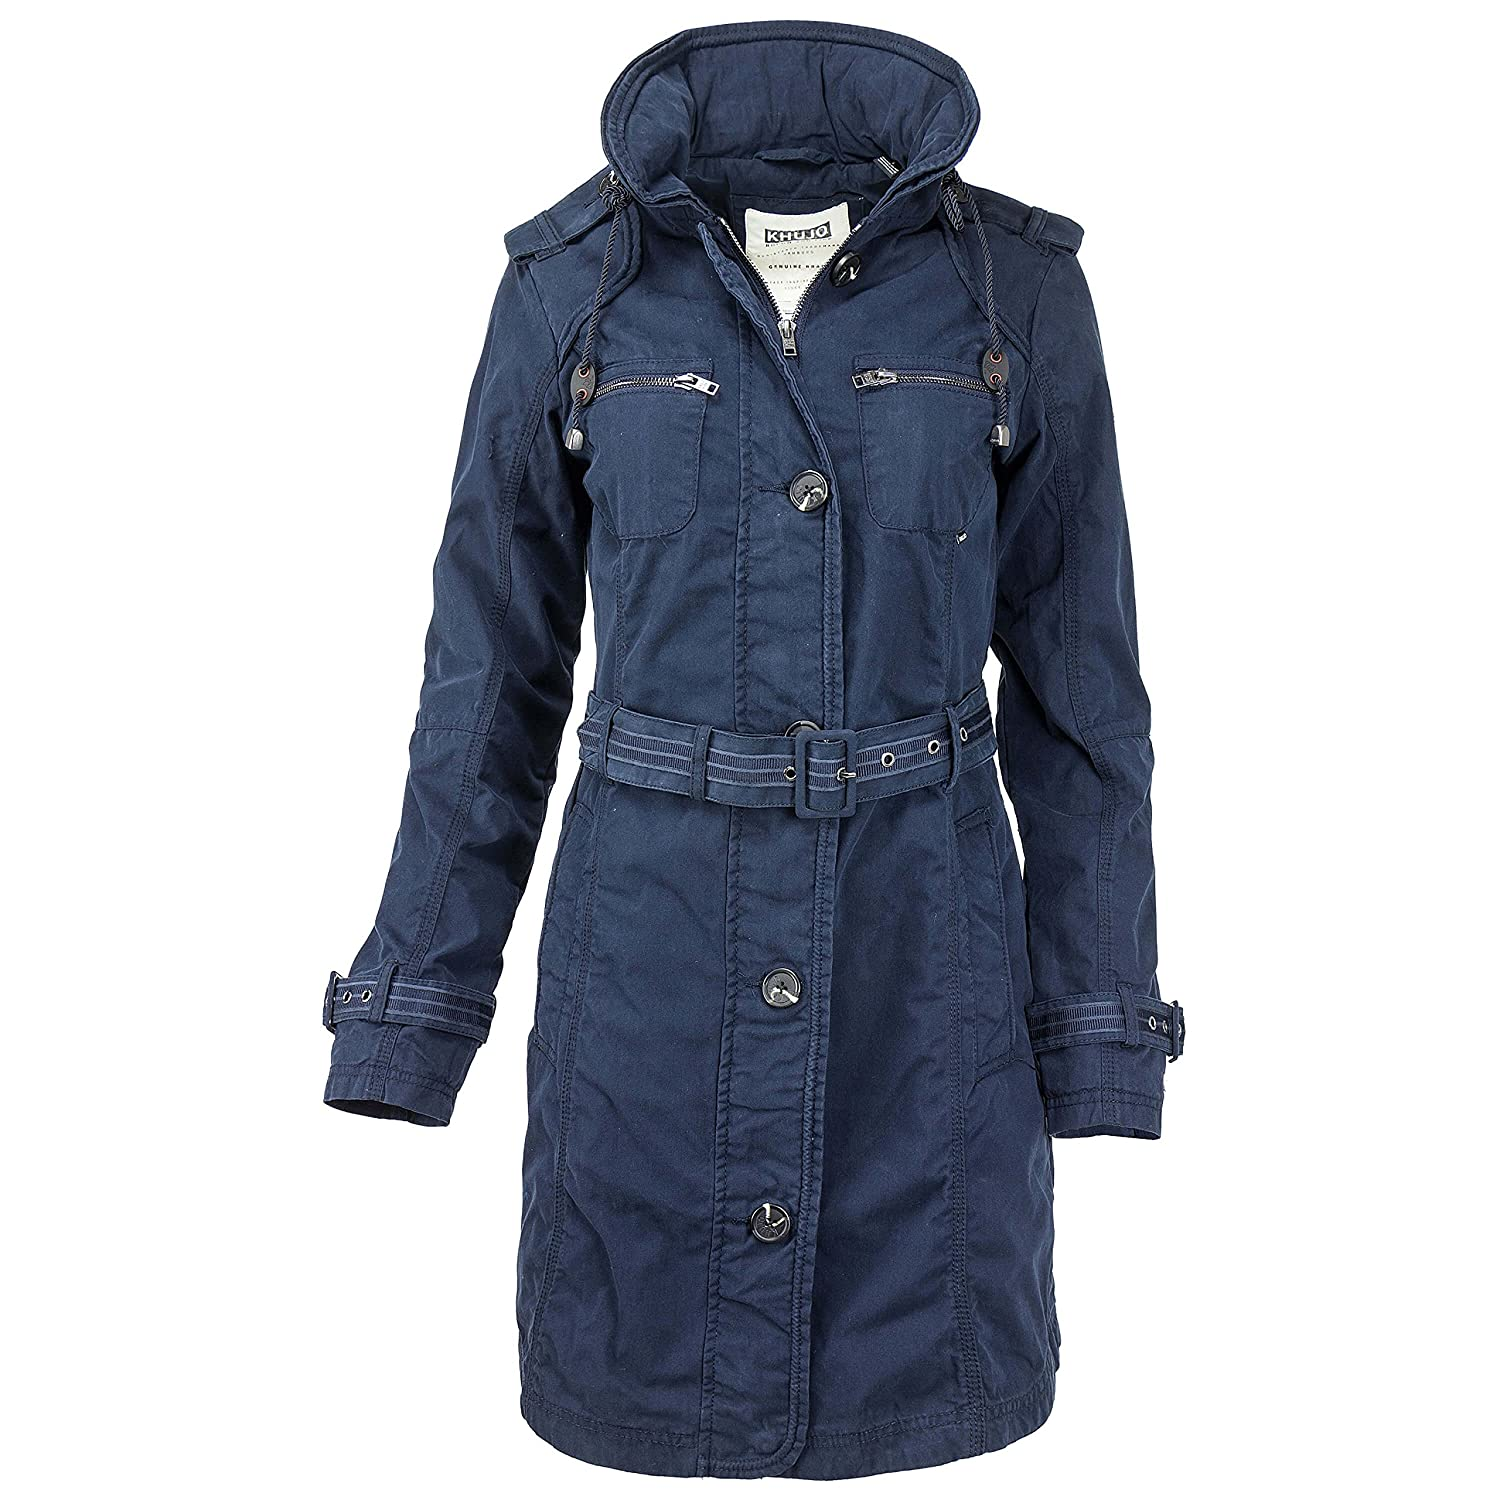 new style 9335f c9e2d Khujo Damen Trenchcoat Mantel high-quality - www ...